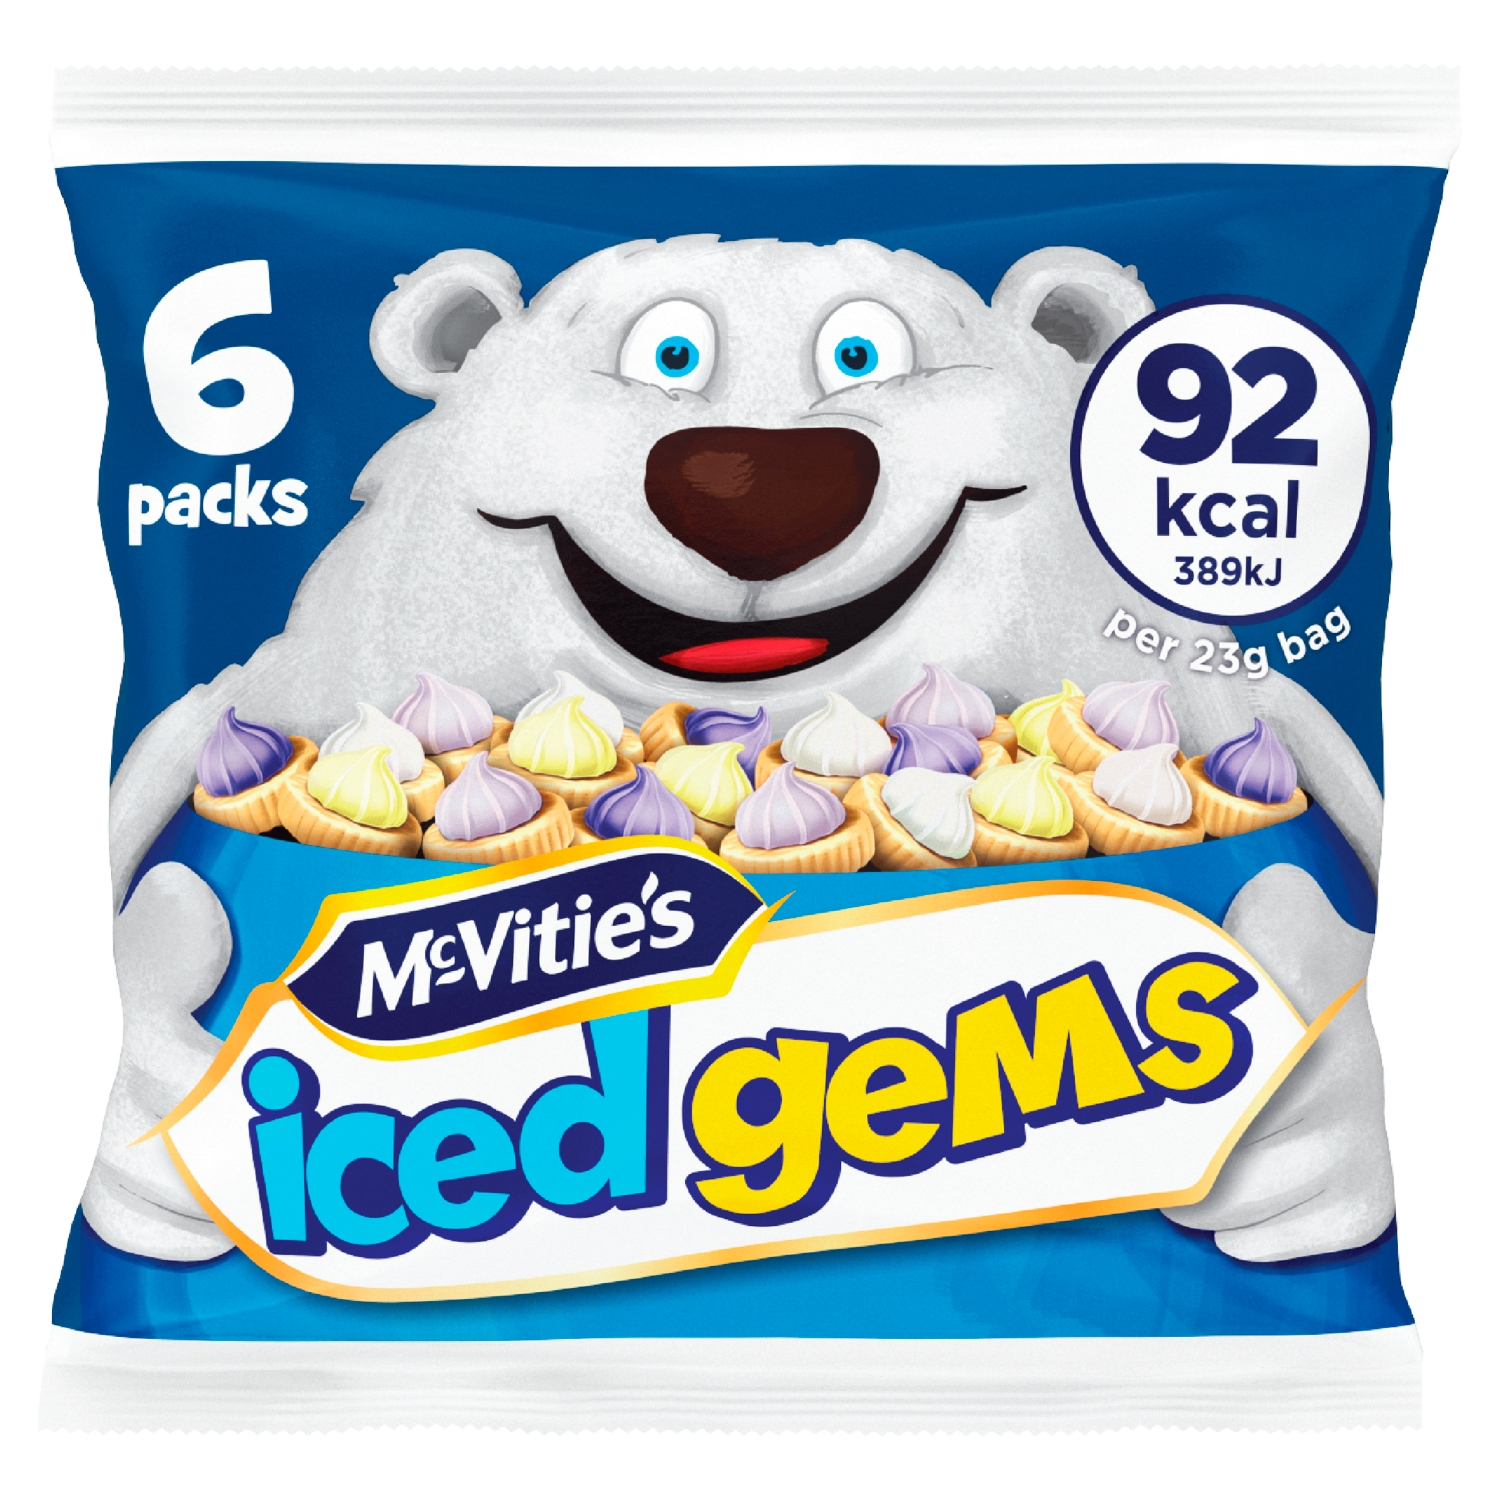 McVitie's Iced Gems Fruit Flavour Iced Topped Biscuits 6 x 23g